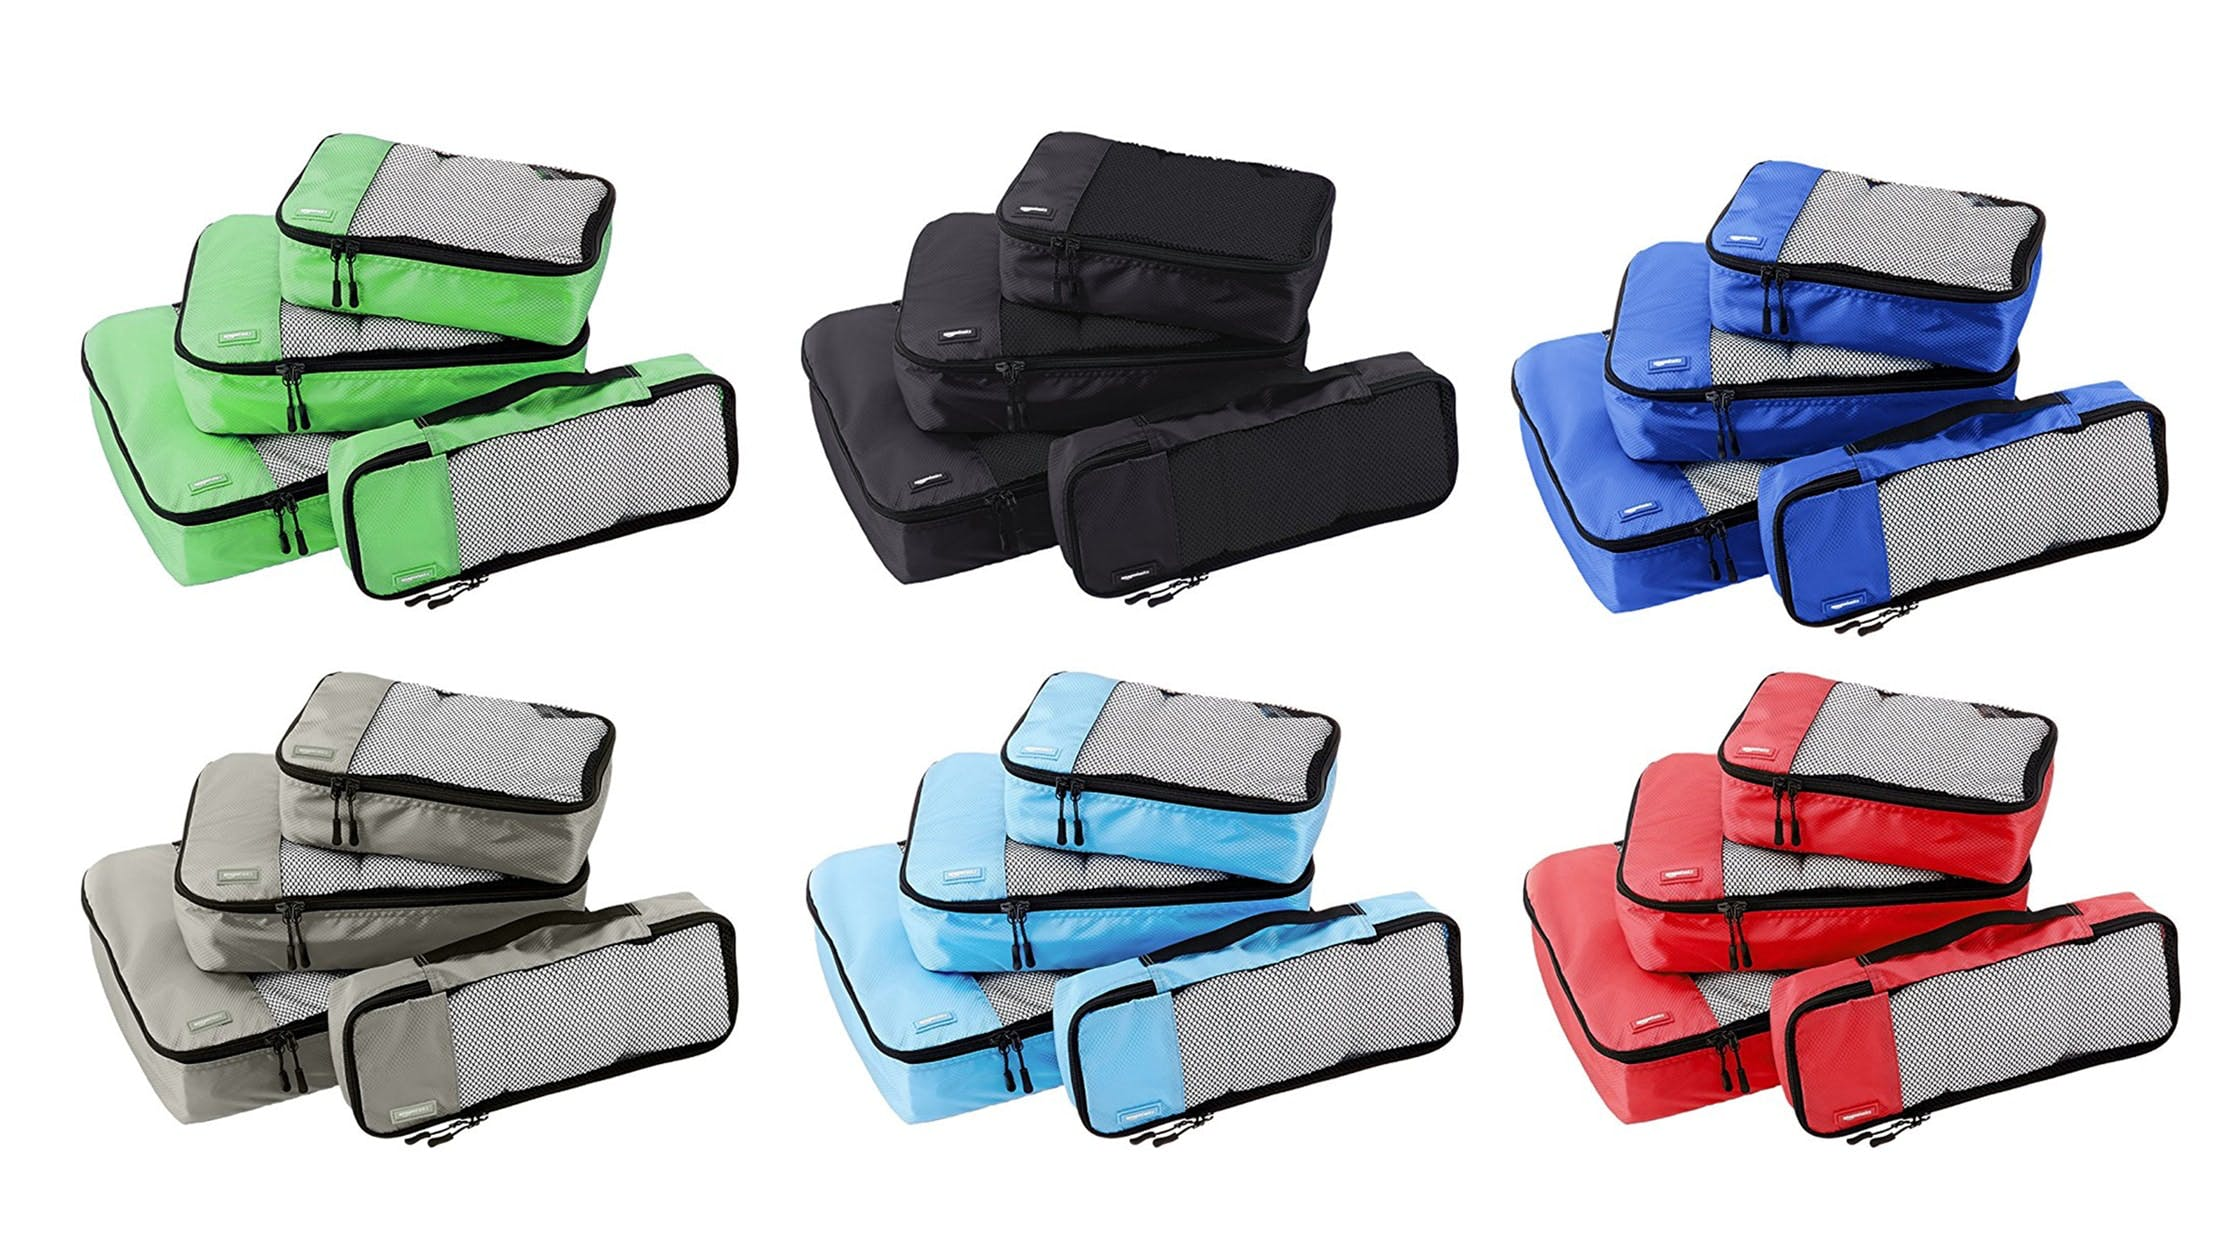 Different AmazonBasics Packing Cubes Colors